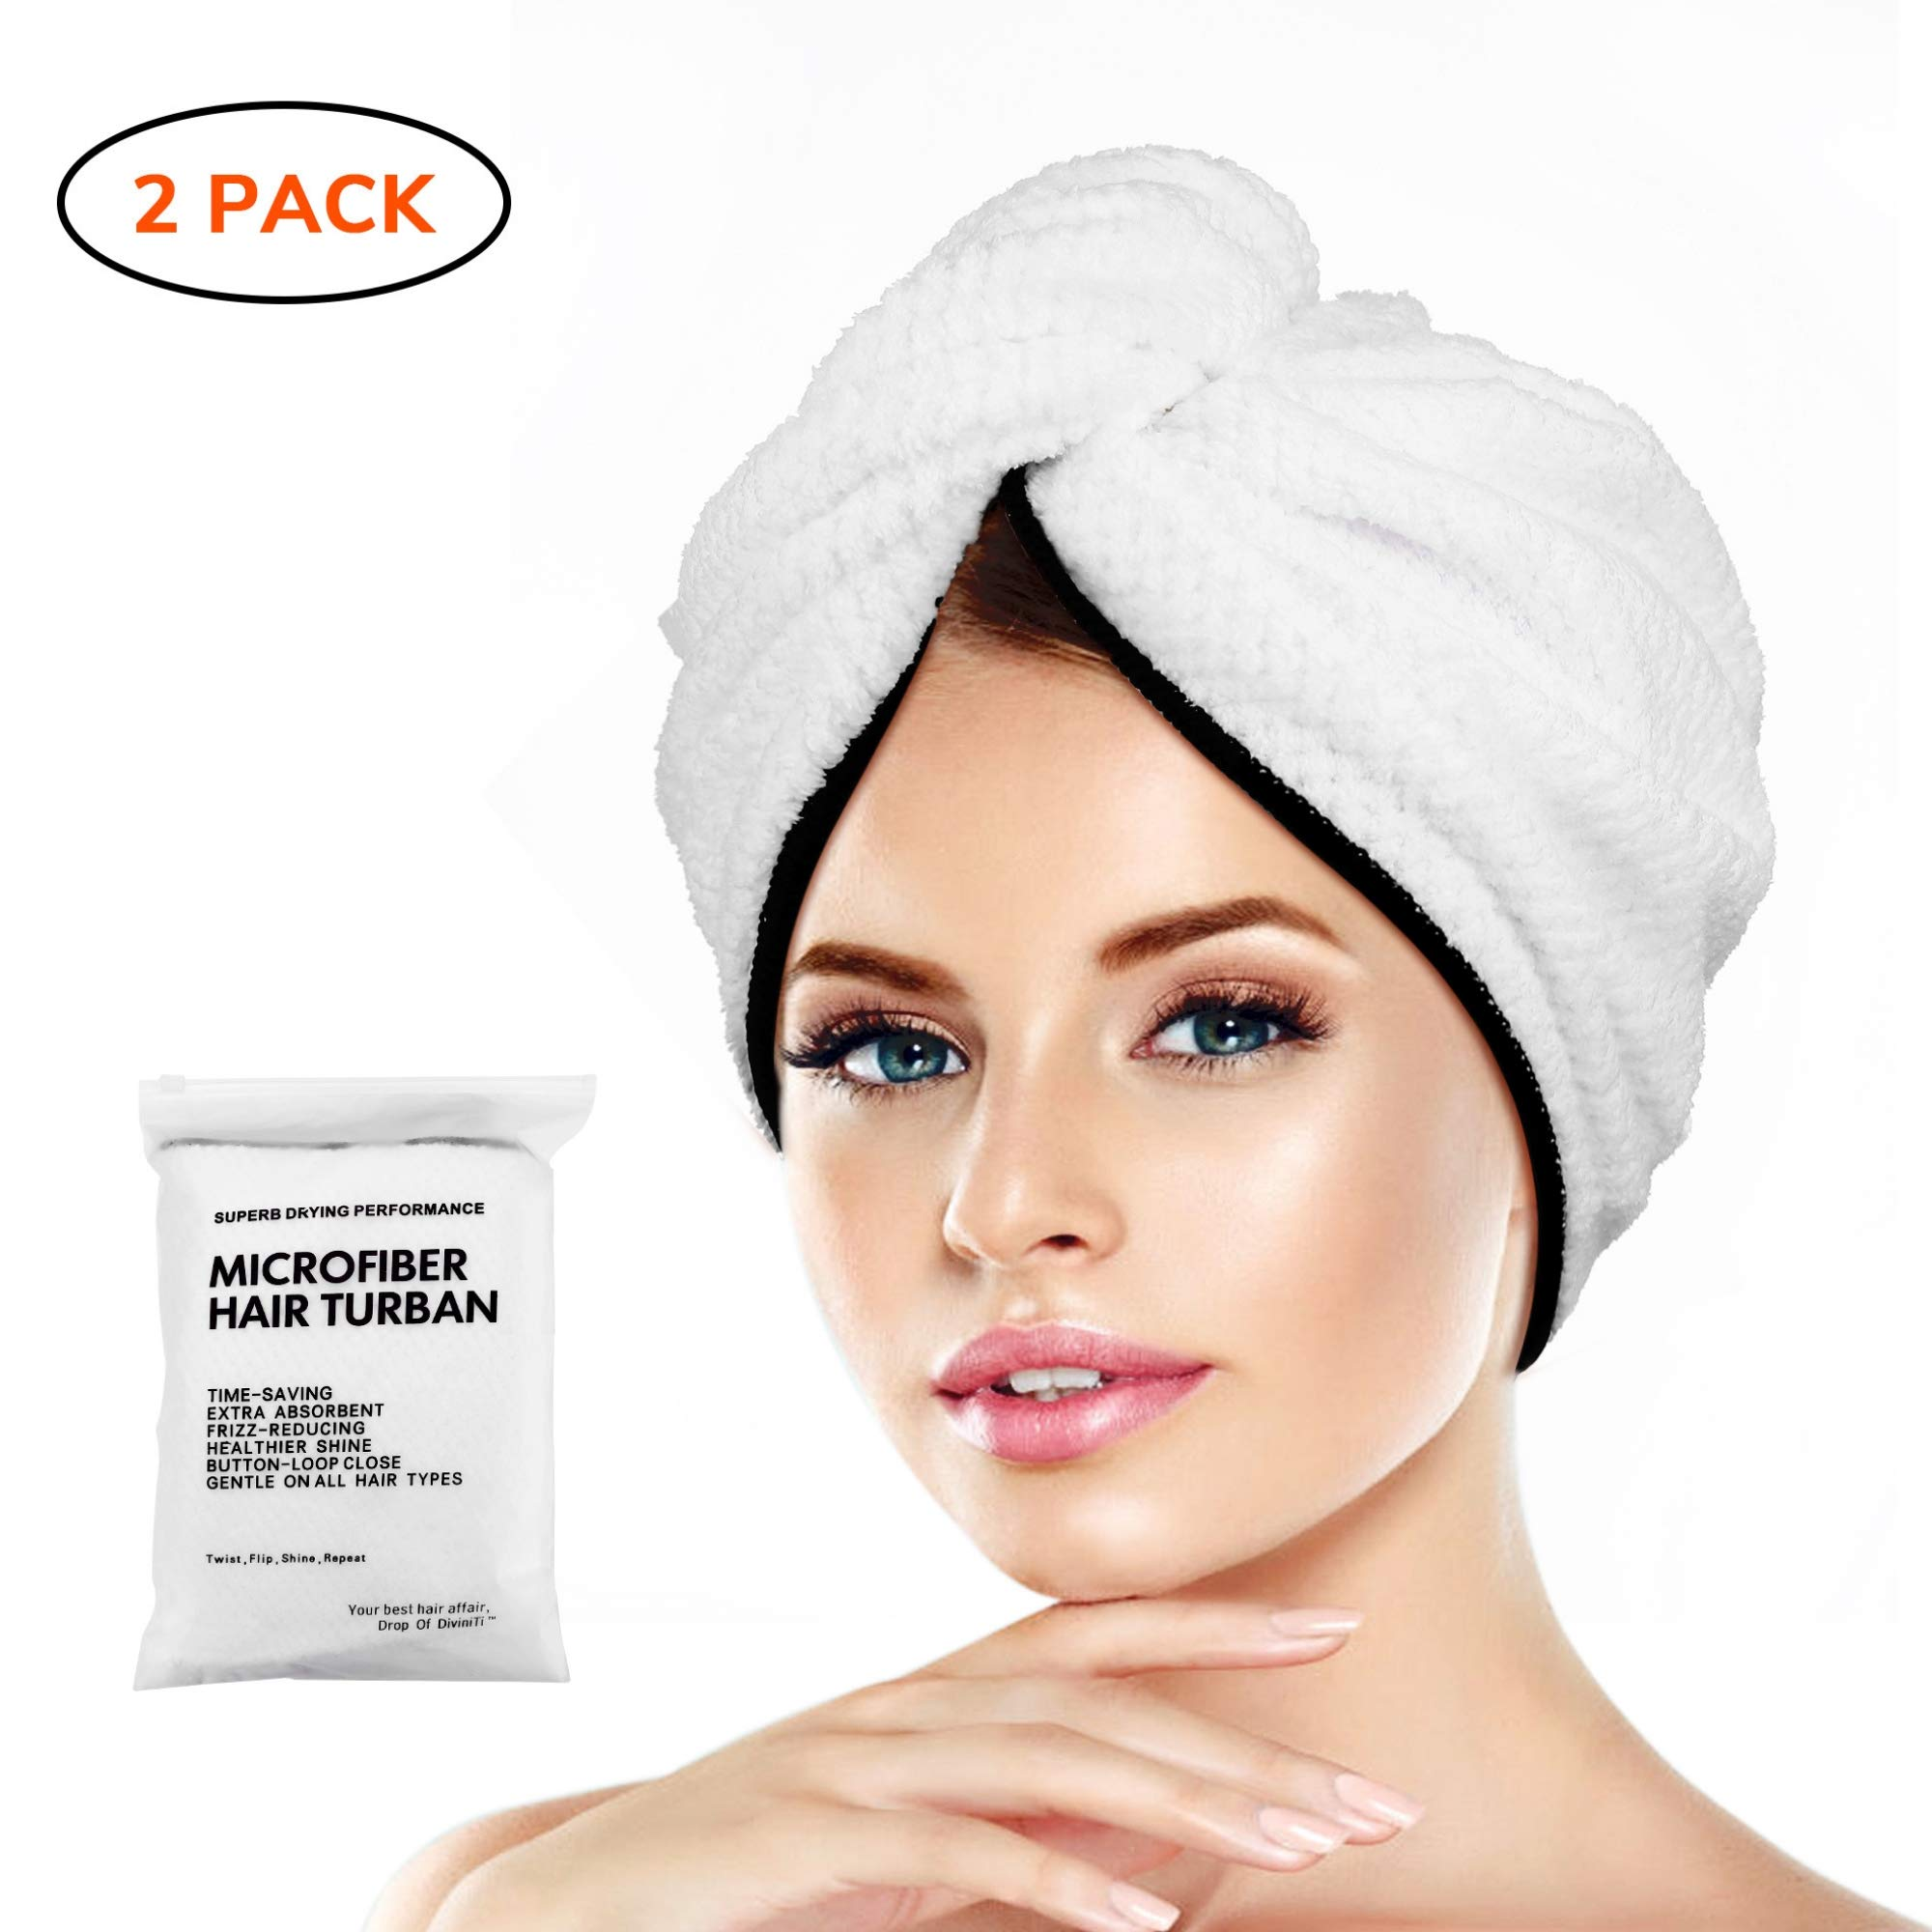 Microfiber Hair Towel Wrap Turban - Quick Dry Head Wraps Women Towel Hair Wrap Travel Towel Twist Hat Magic Drying Shower Wrap Absorbent Turbans Wrap for Sleeping Accessories - Double Hair Towel by DROP OF DIVINITI